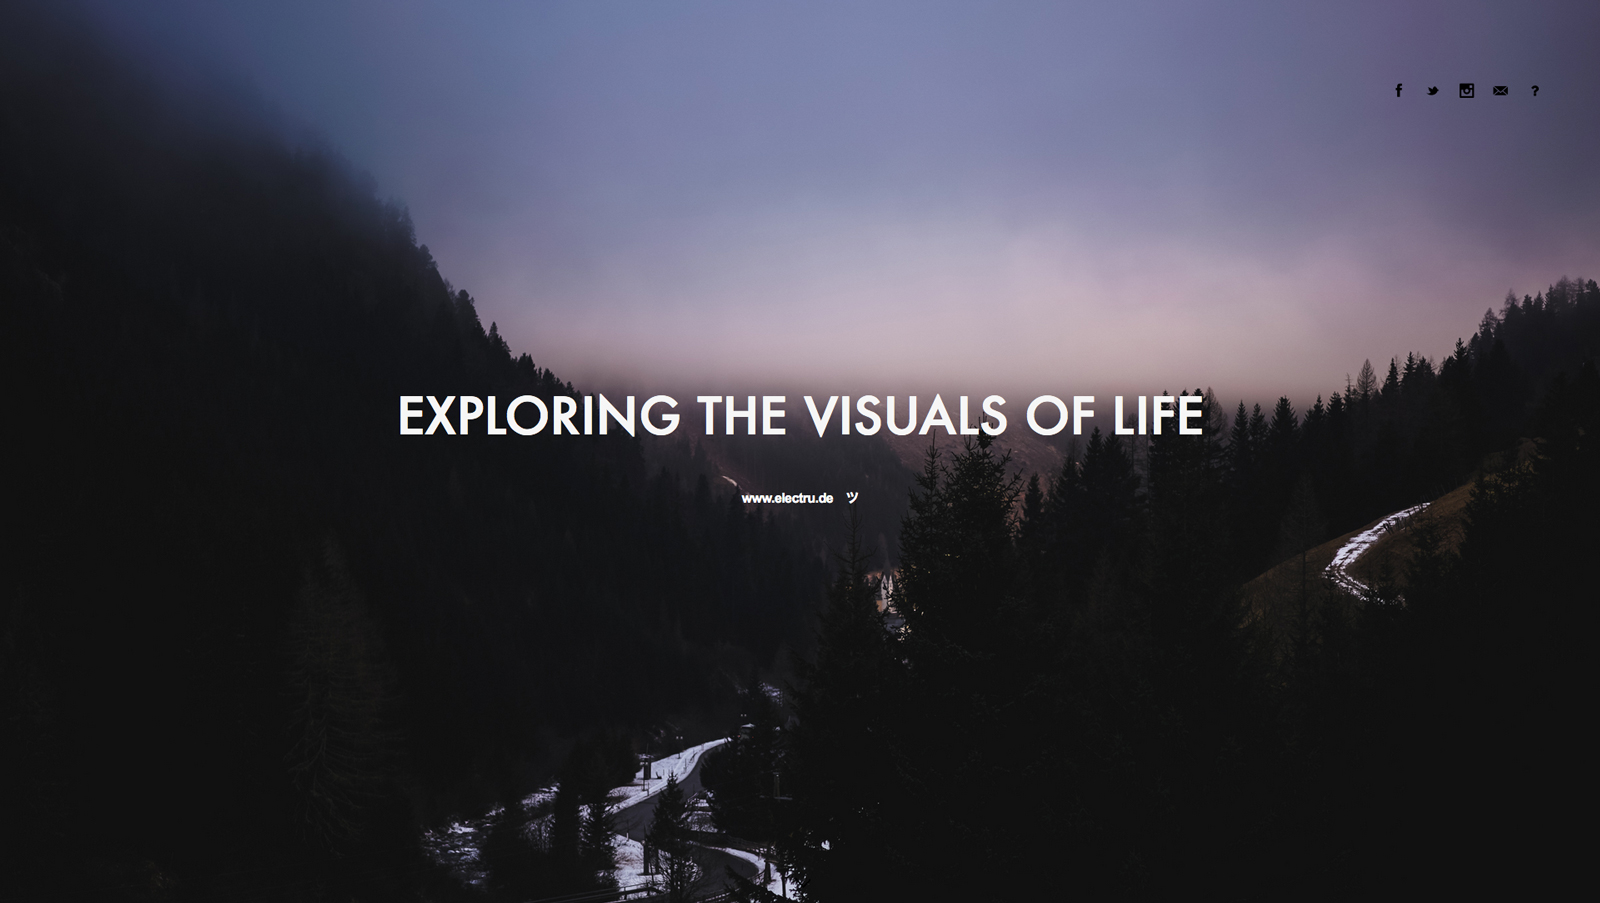 thevisualsoflife_tumblr_com